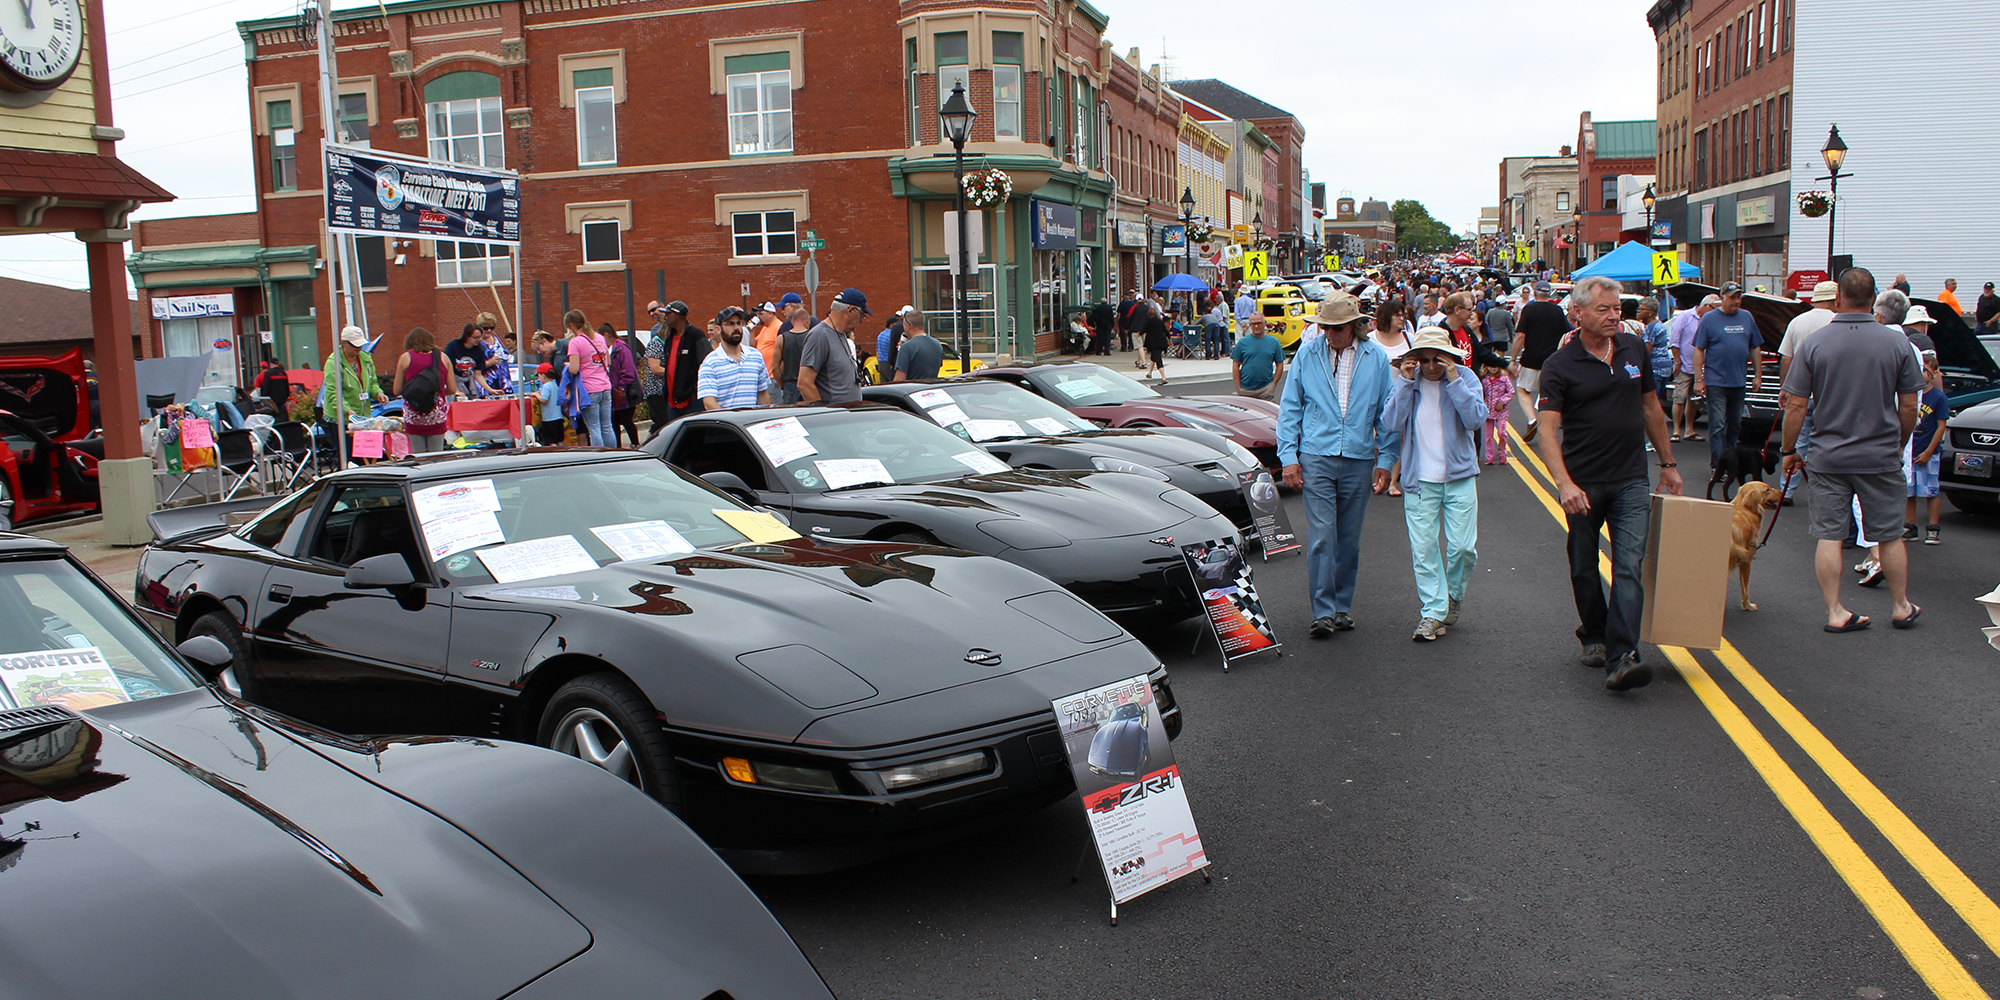 Corvettes and crowds